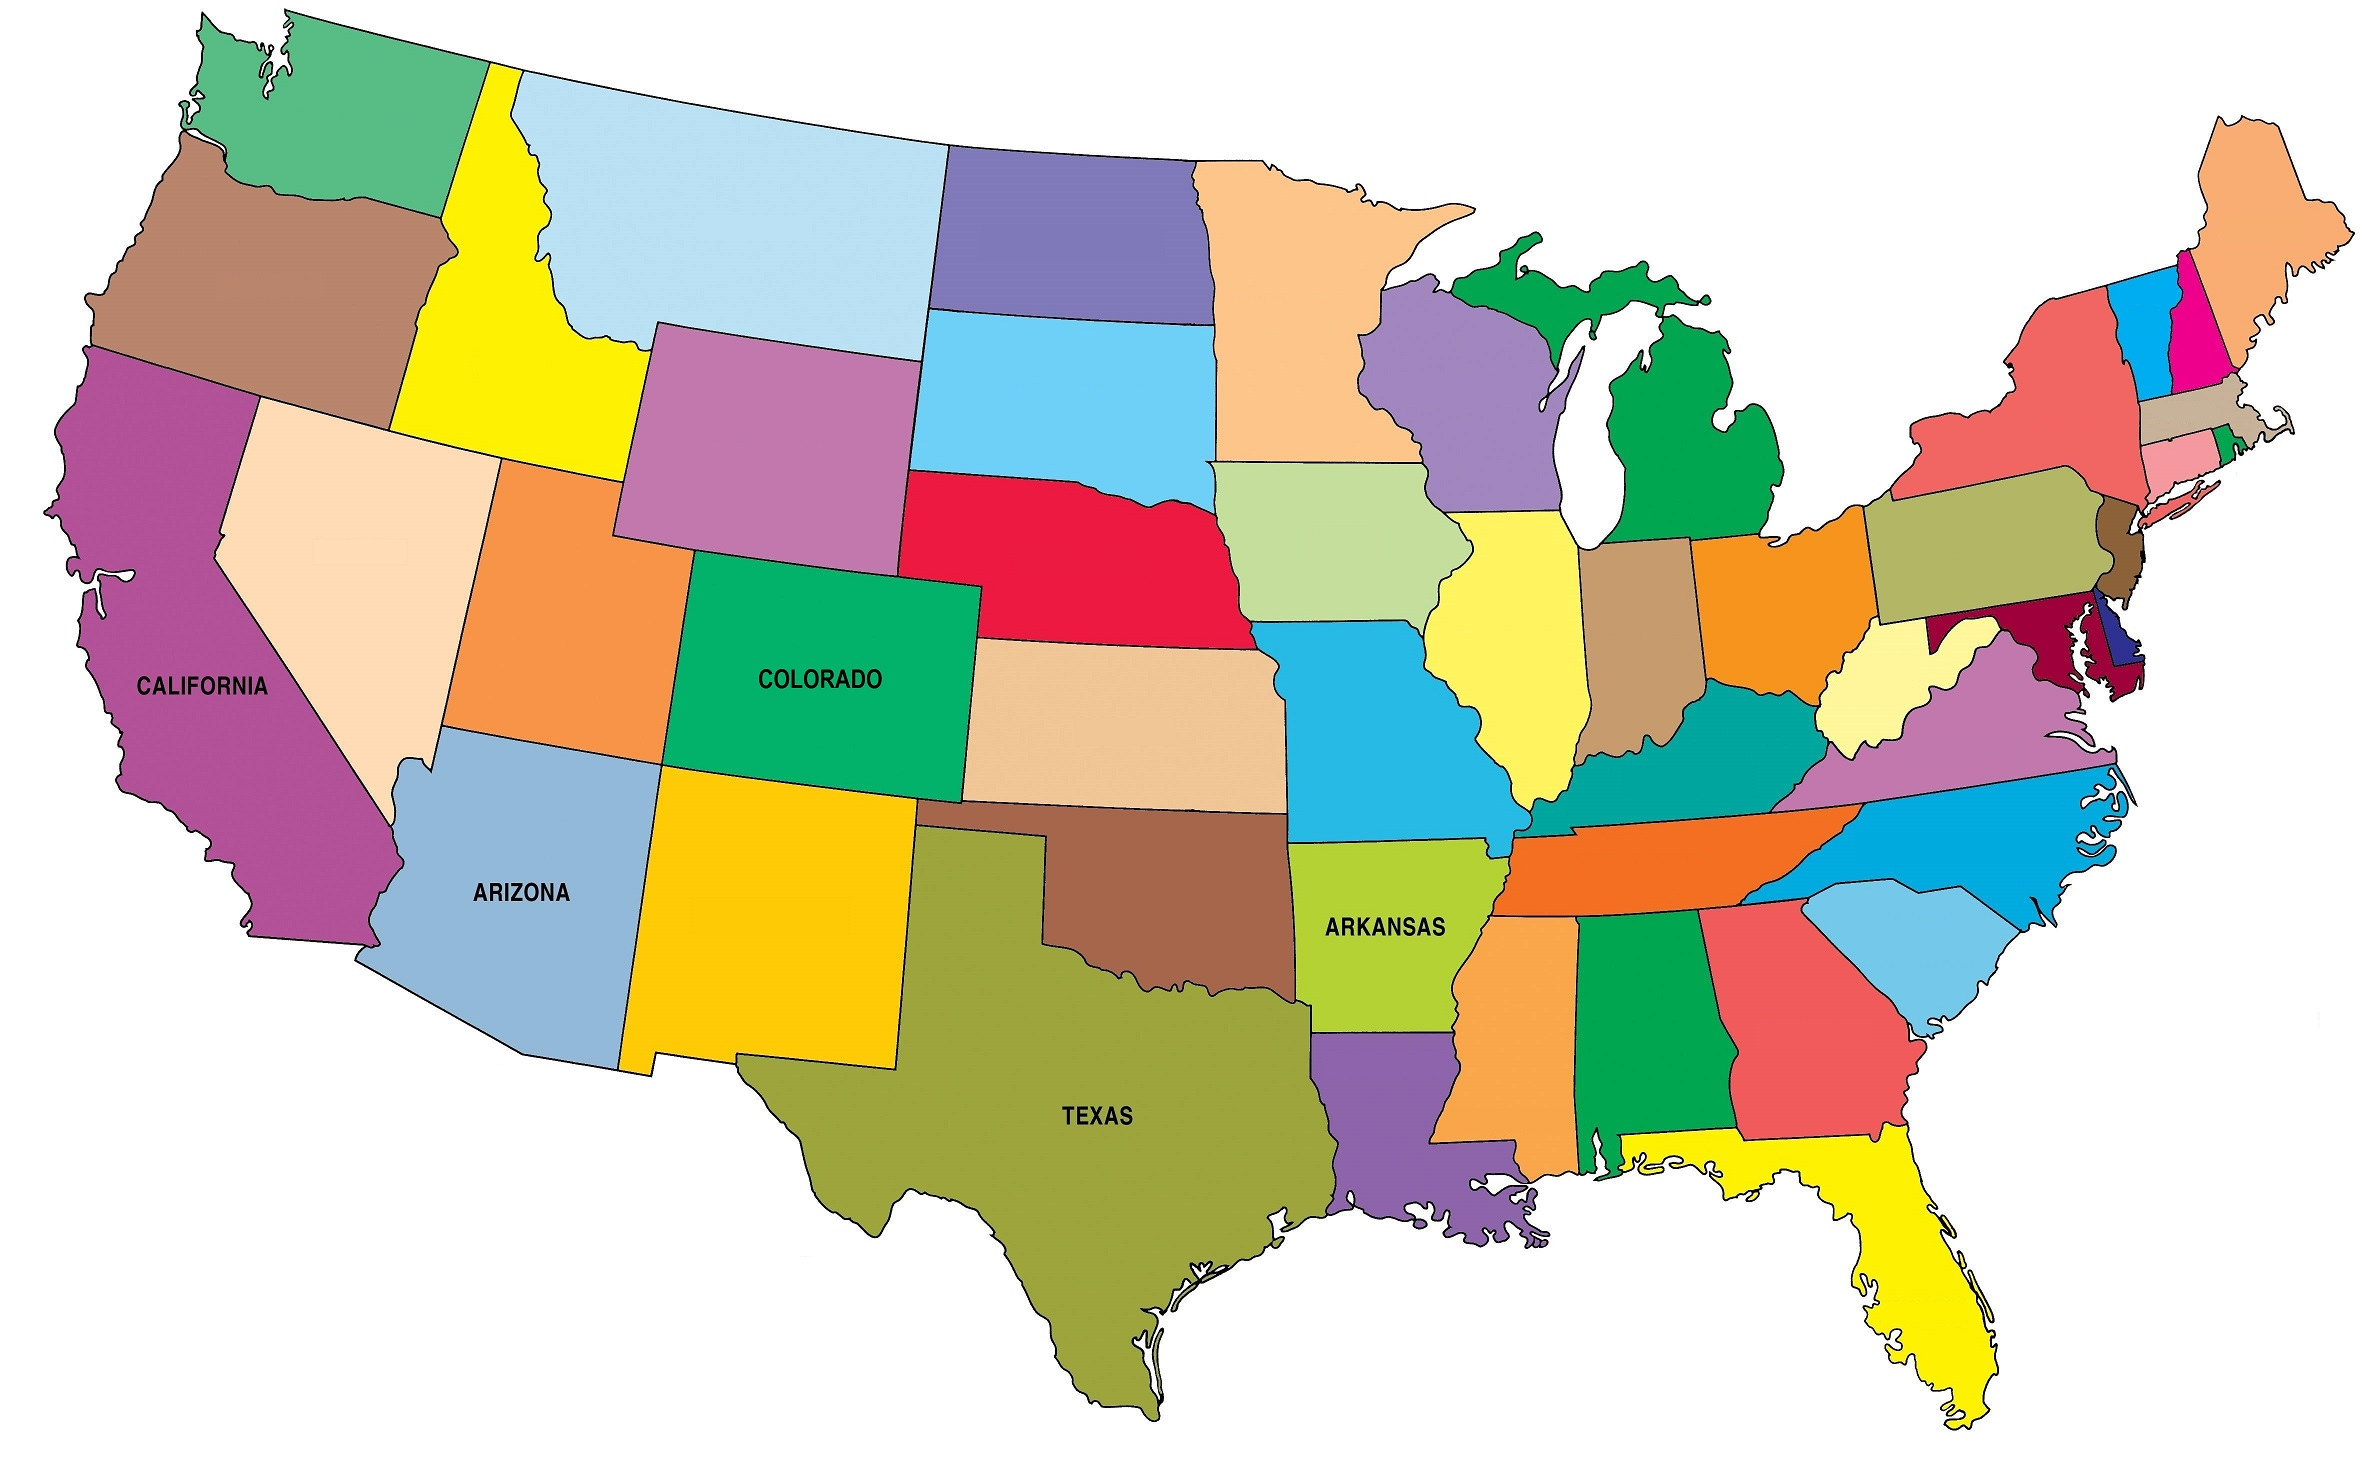 Map of US states serviced by SET Retirement Planning Solutions.